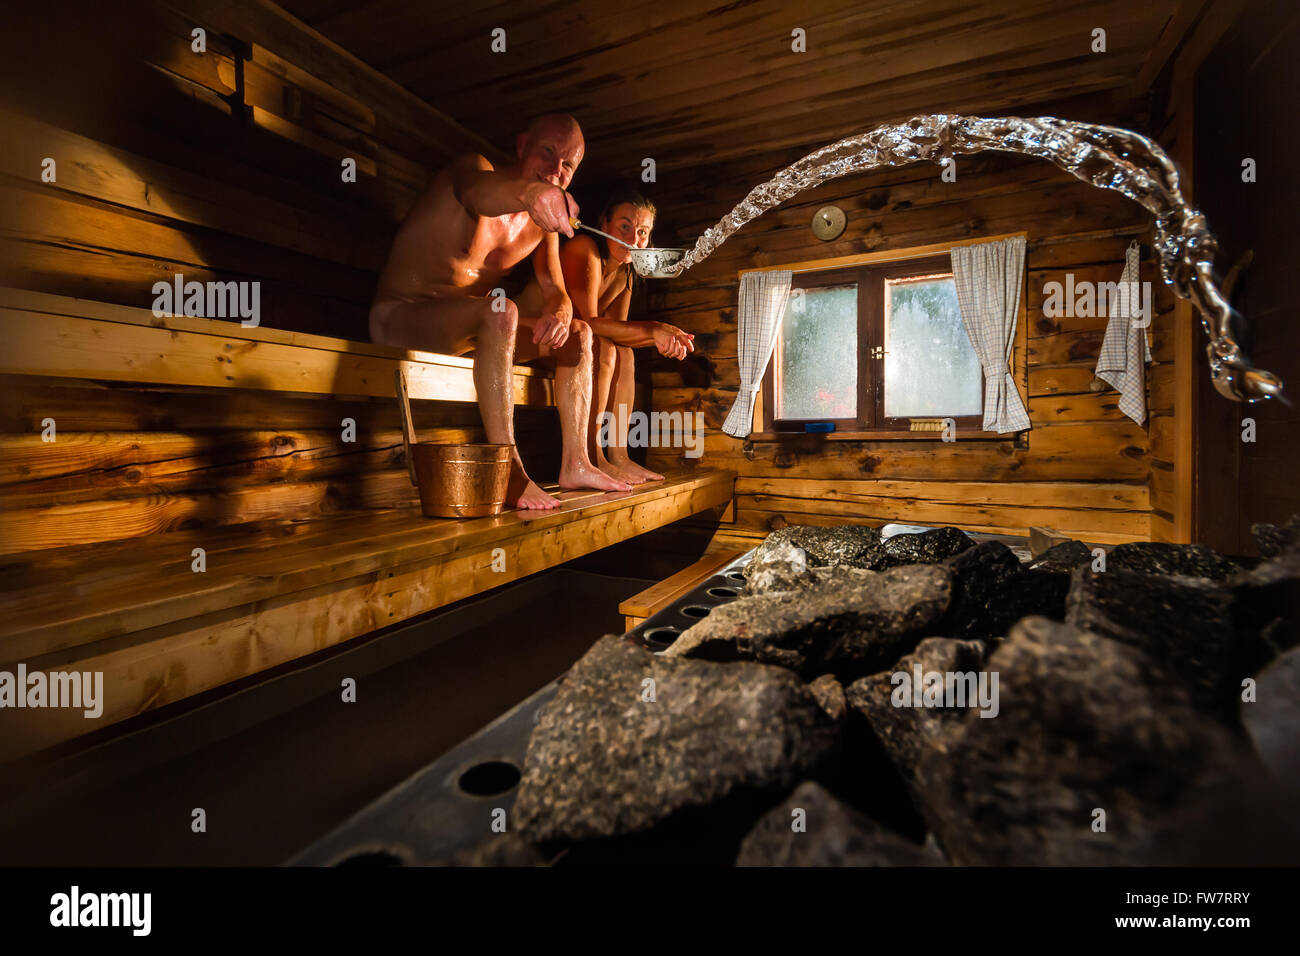 Middle aged couple in traditional wooden Finnish sauna, man throwing water to hot stove - Stock Image